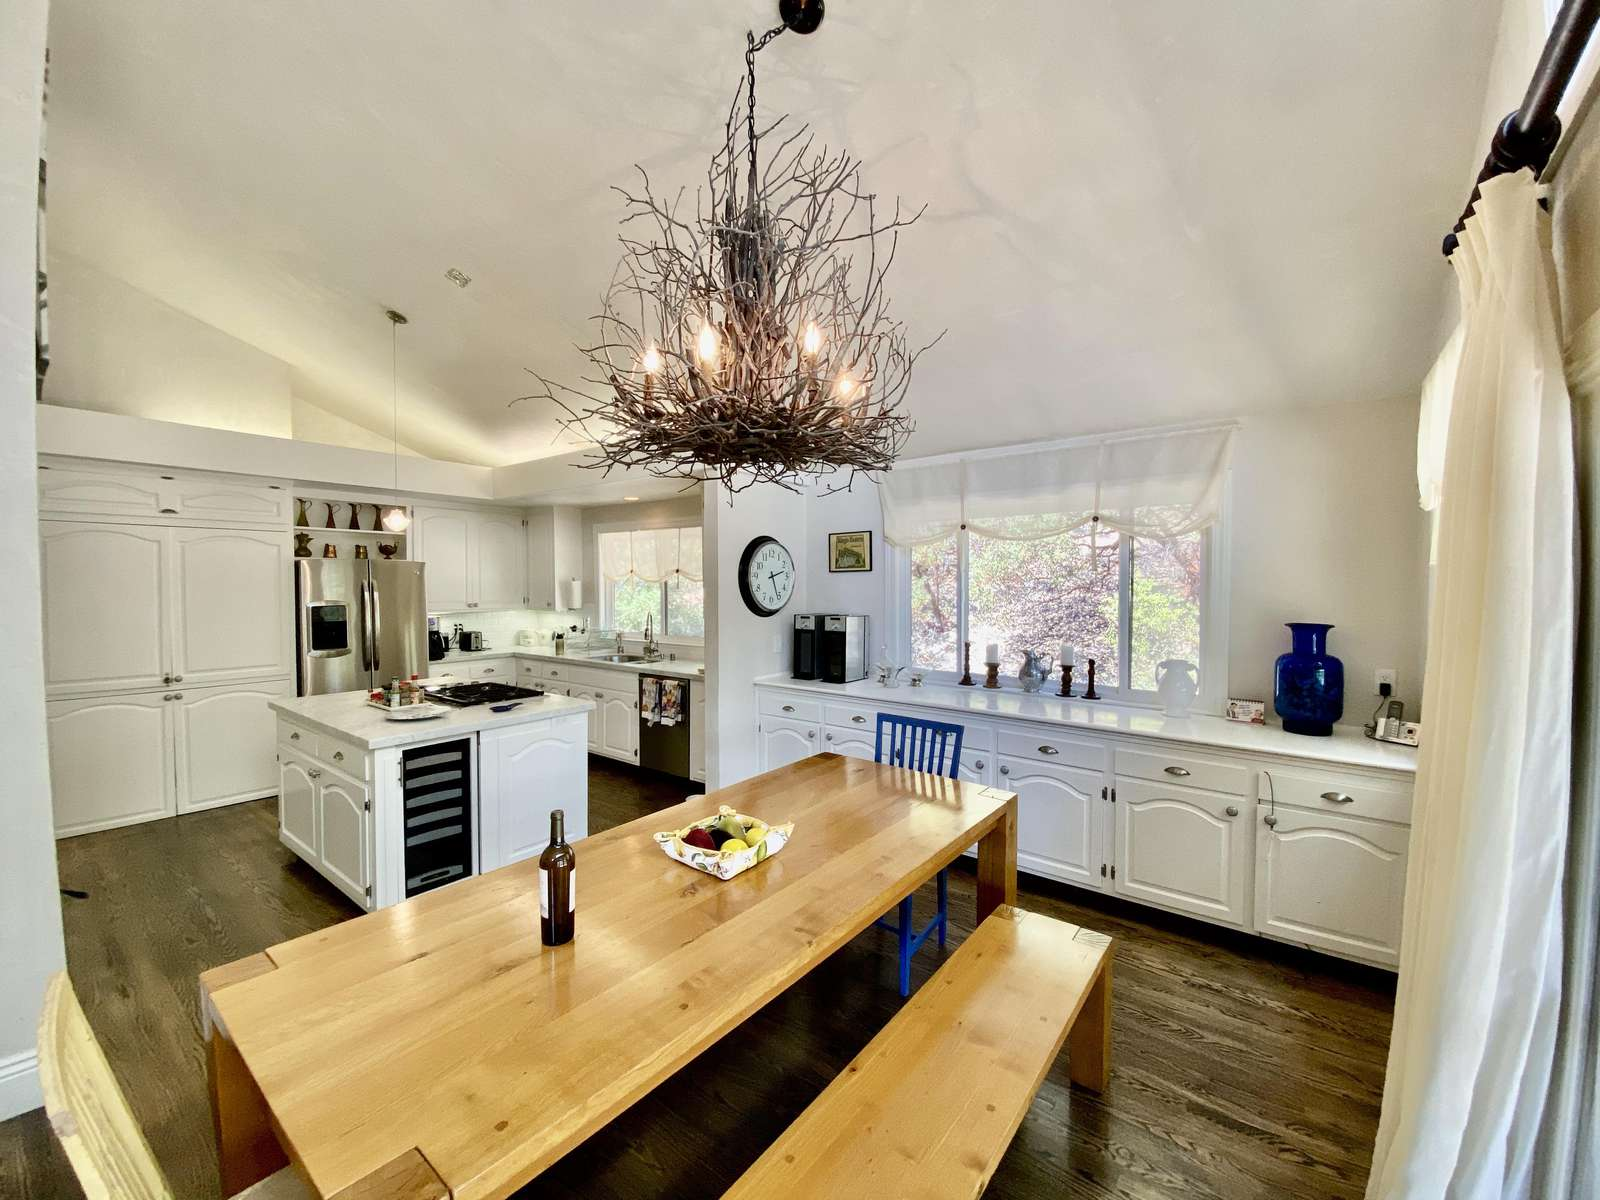 Large eat-in kitchen & dining area